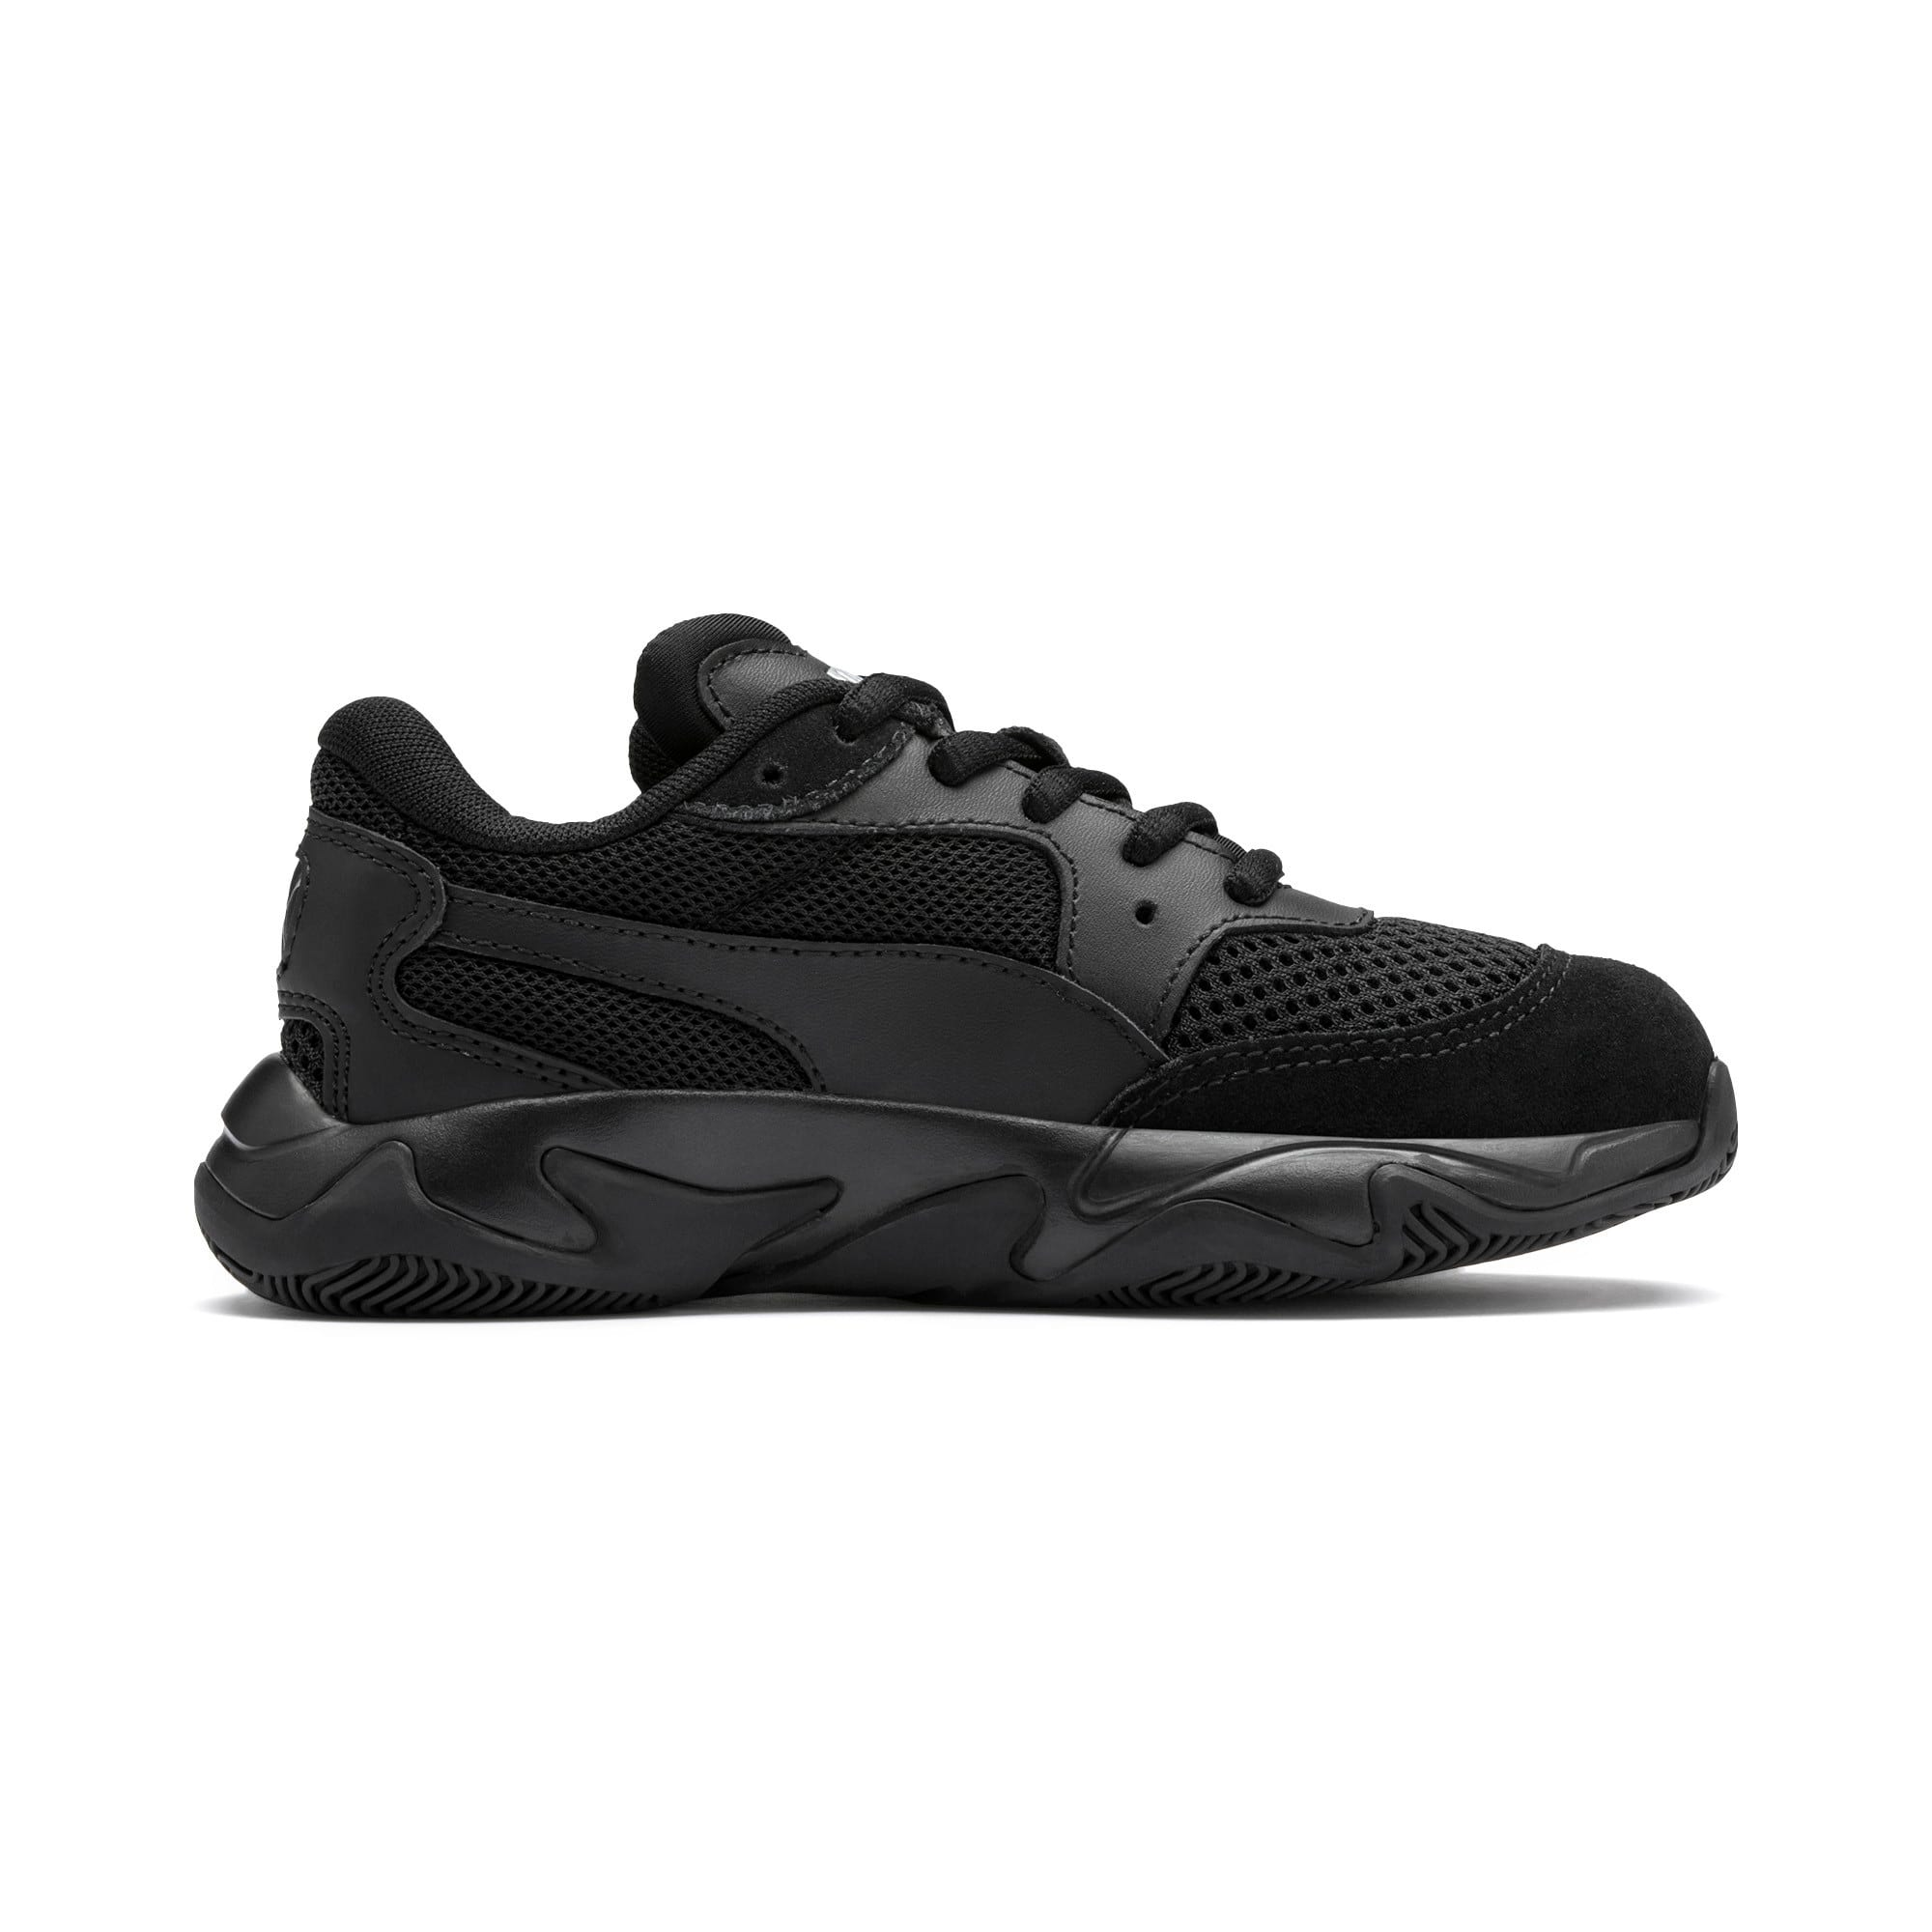 Thumbnail 5 van Storm Origin kindersportschoenen, Puma Black, medium